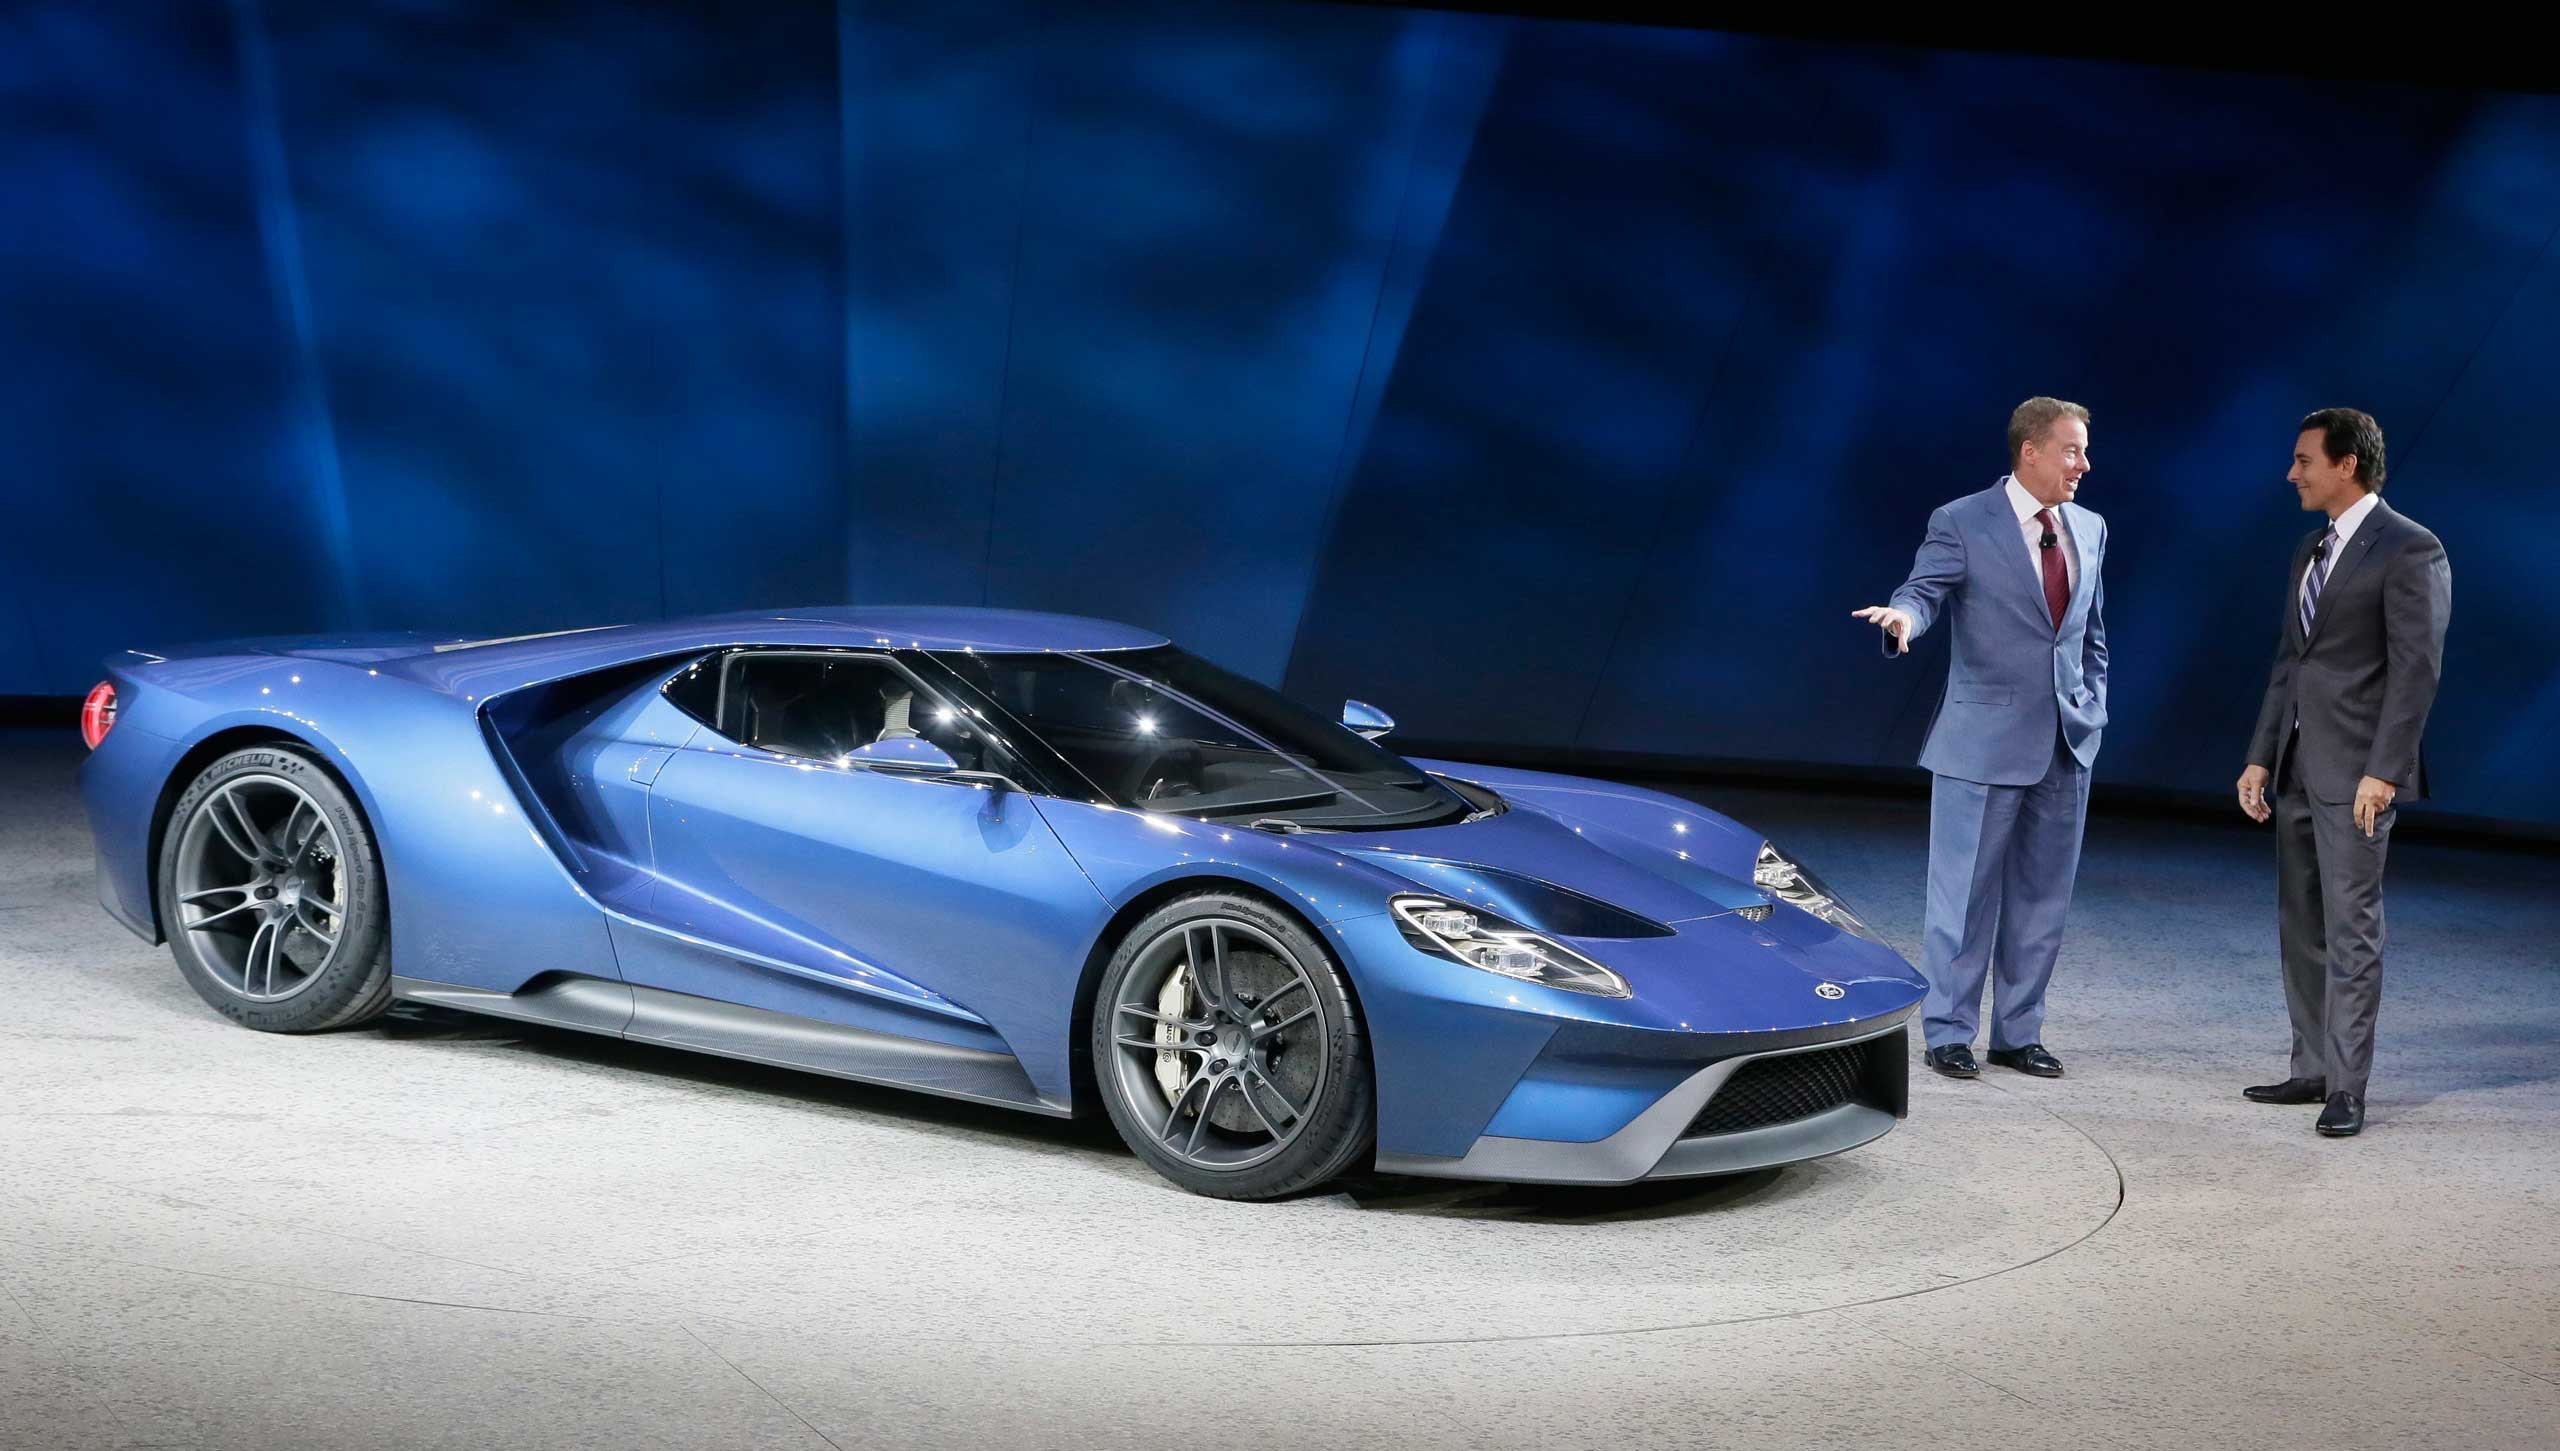 Ford Motor Co., Executive Chairman Bill Ford, left, and President and COO Mark Fields stand next to the new Ford GT on Jan. 12, 2015 in Detroit.